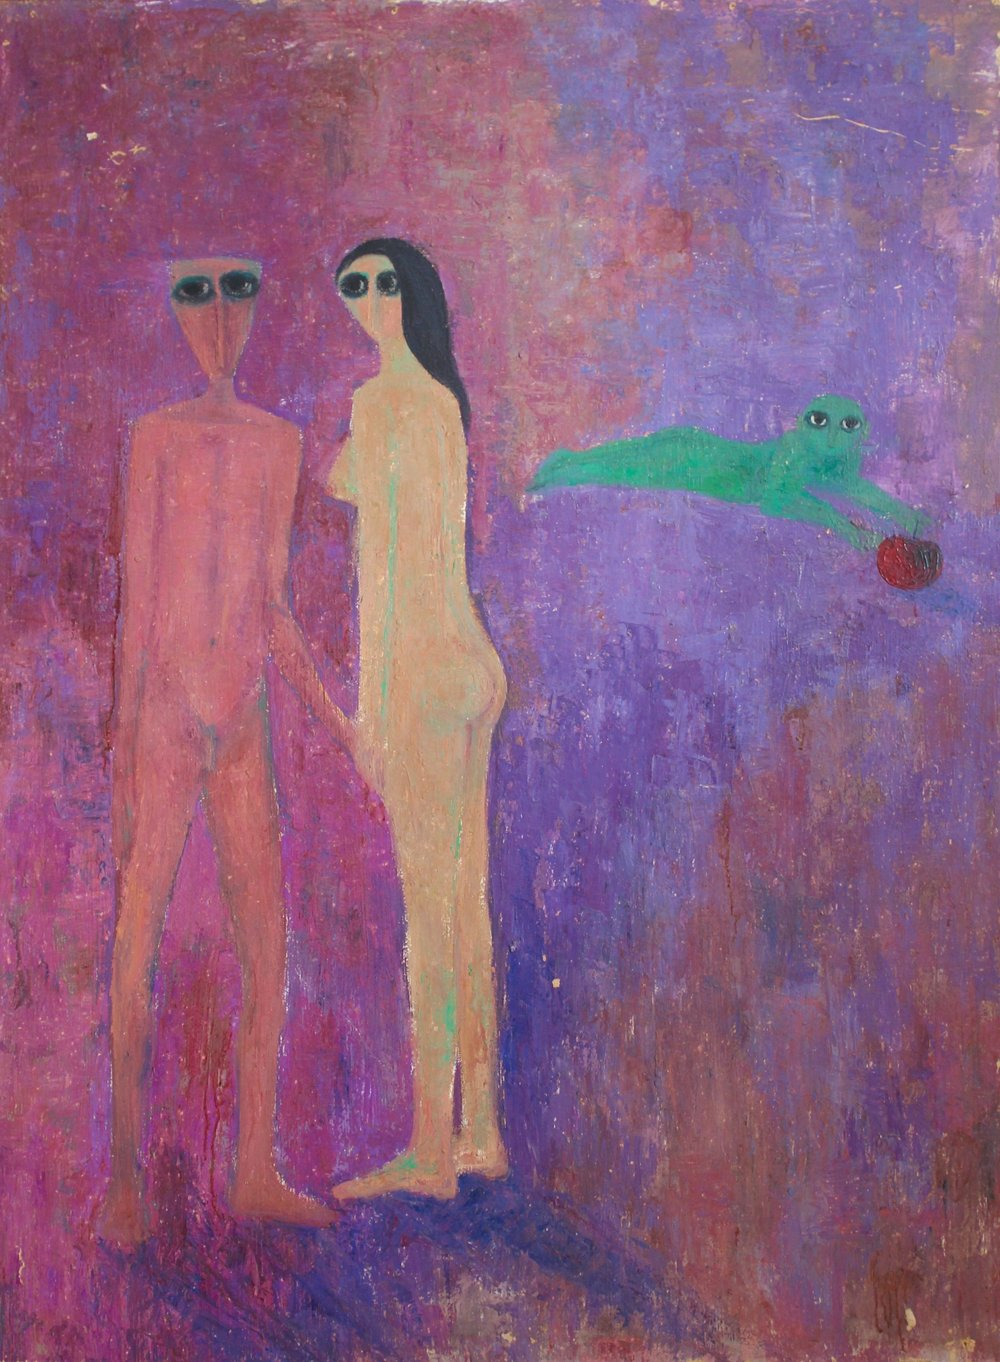 Ahmed_Morsi_Adam_and_Eve_1959 copy.jpg